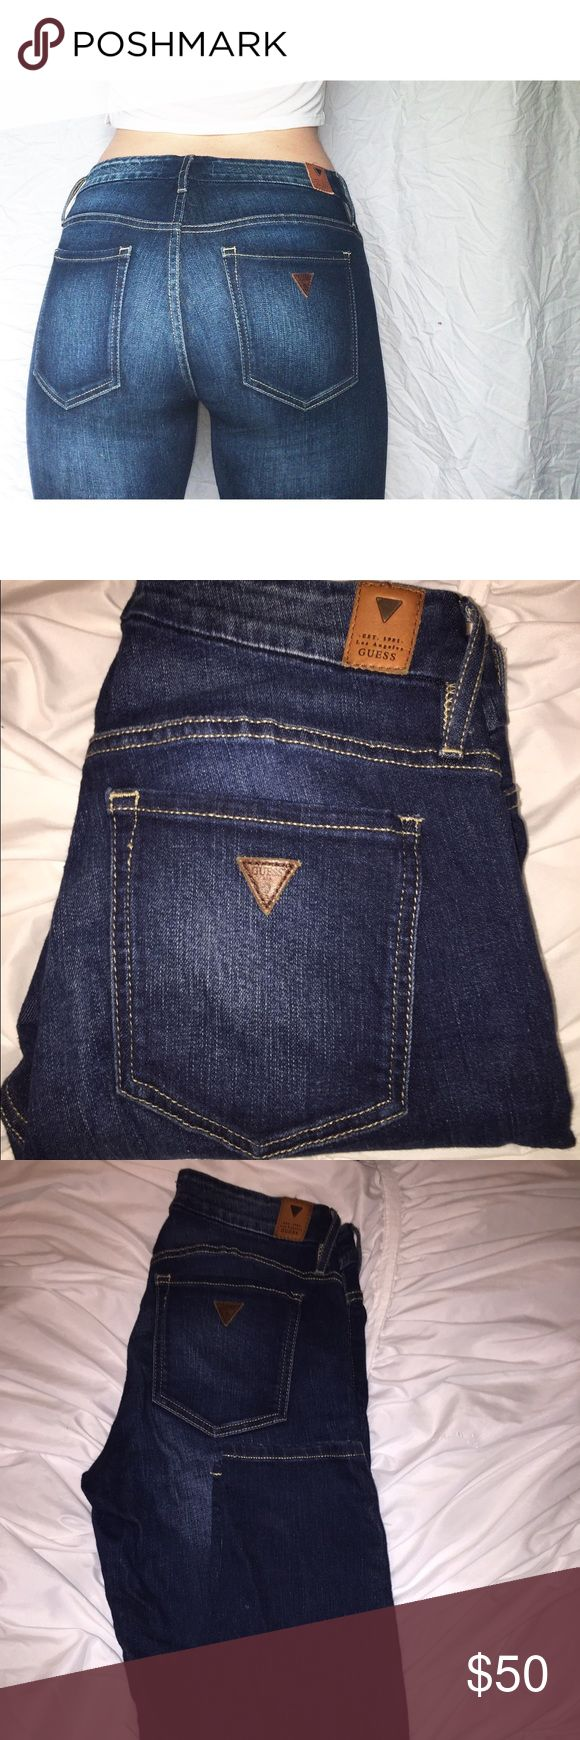 Guess Jeans Dark Rinse Guess Skinny Jeans Guess Jeans Skinny